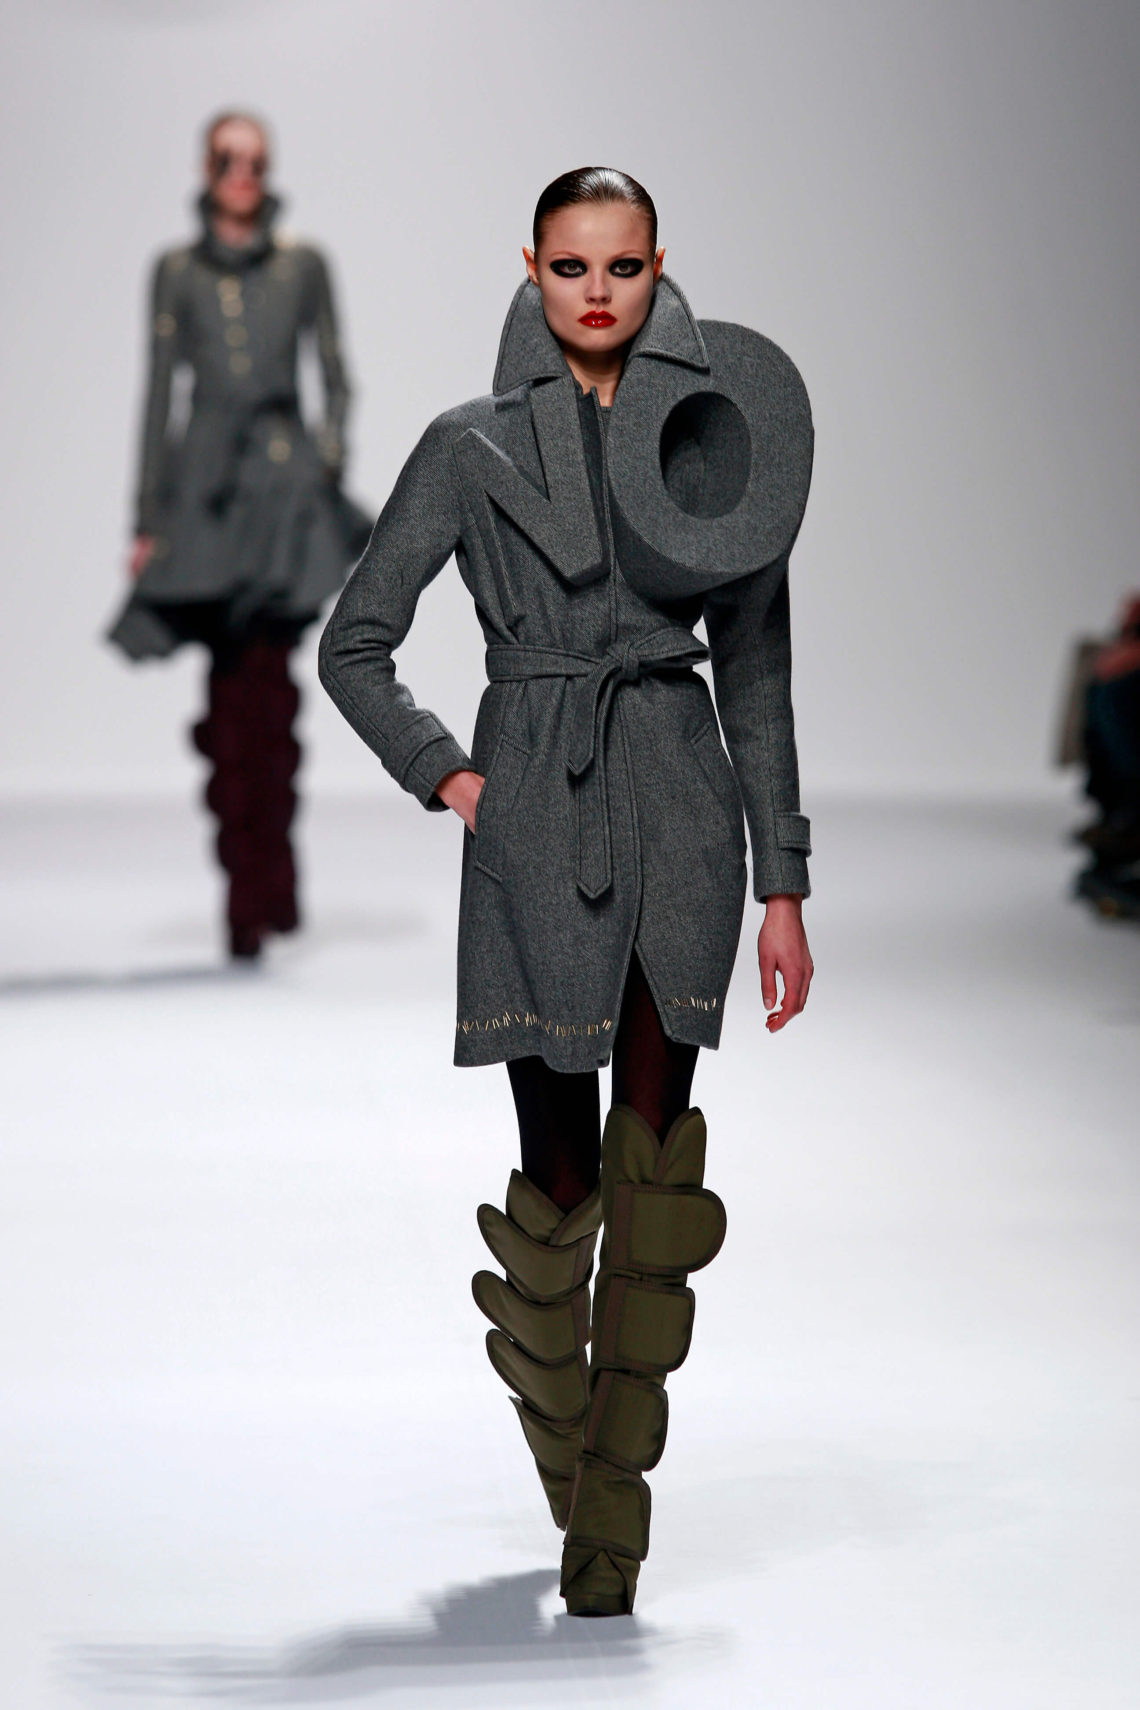 Mintsquare_It-Takes-Two-to-Make-the-Fashion-World-Go-Round_Viktor-and-Rolf-'NO'-Coat-Autumn-Winter-2008-photography-Team-Peter-Stigter